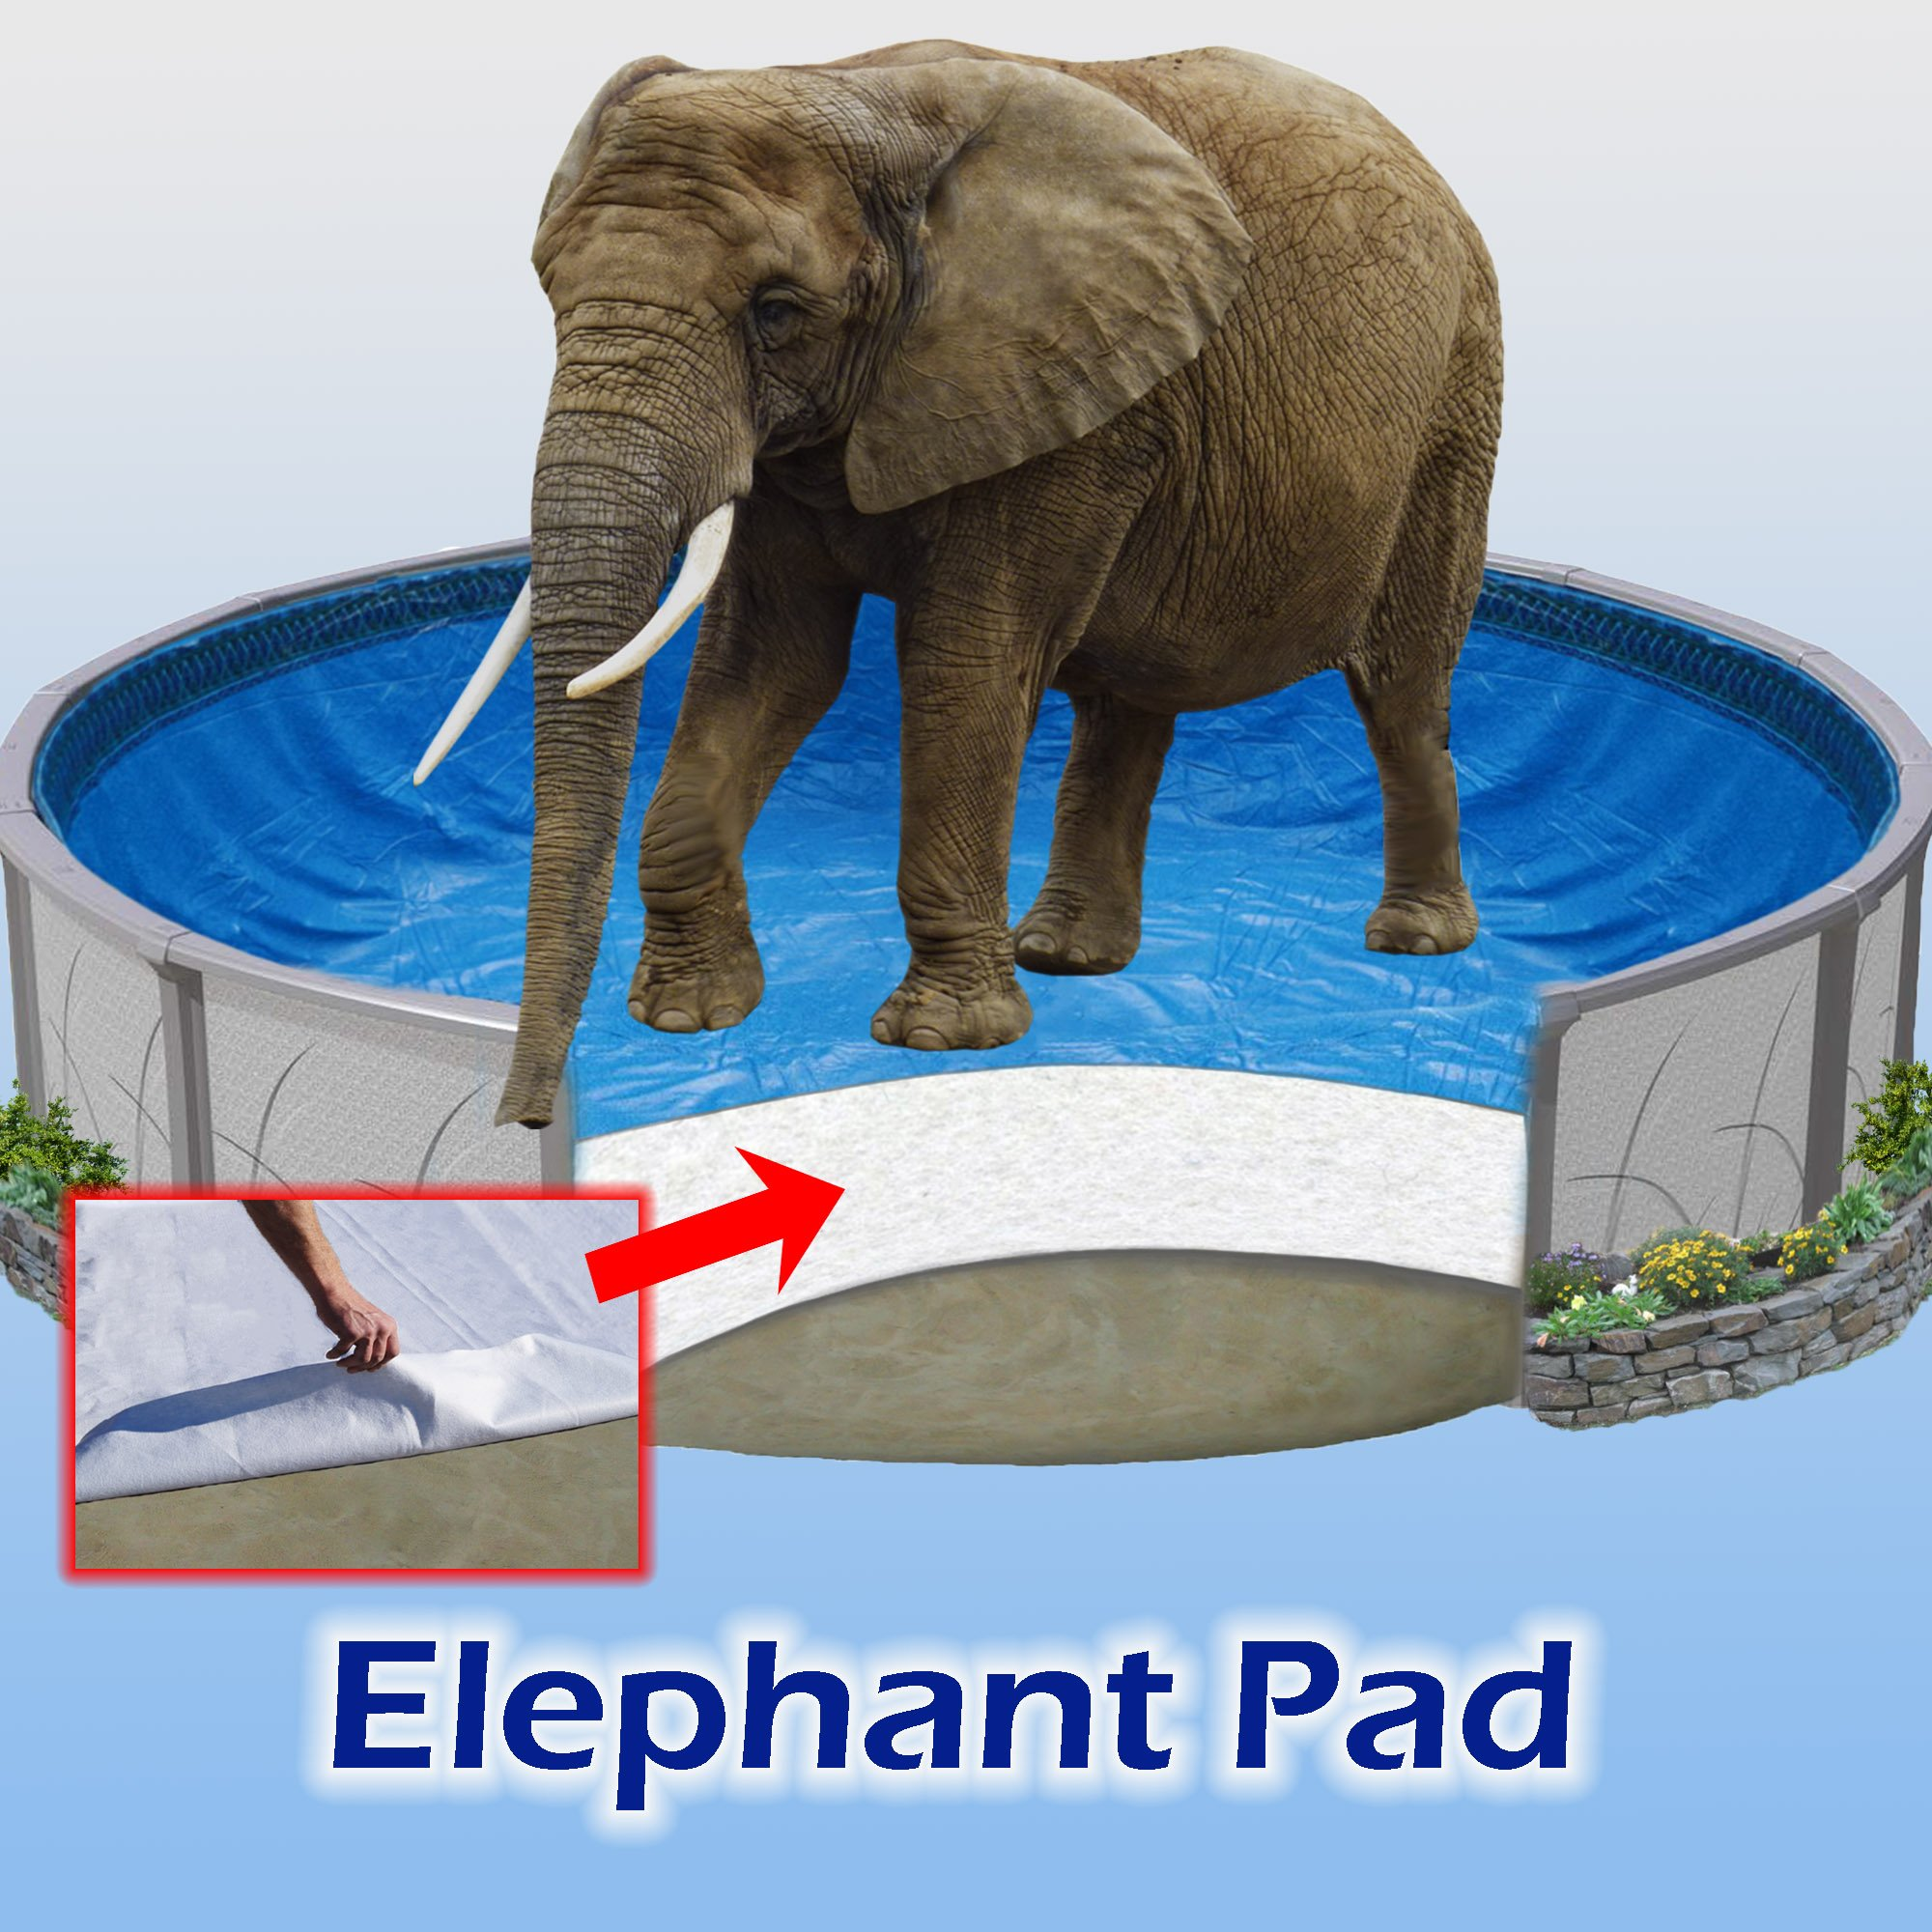 18 ft Round Pool Liner Pad, Elephant Guard Armor Shield Padding by Quality Pool Products